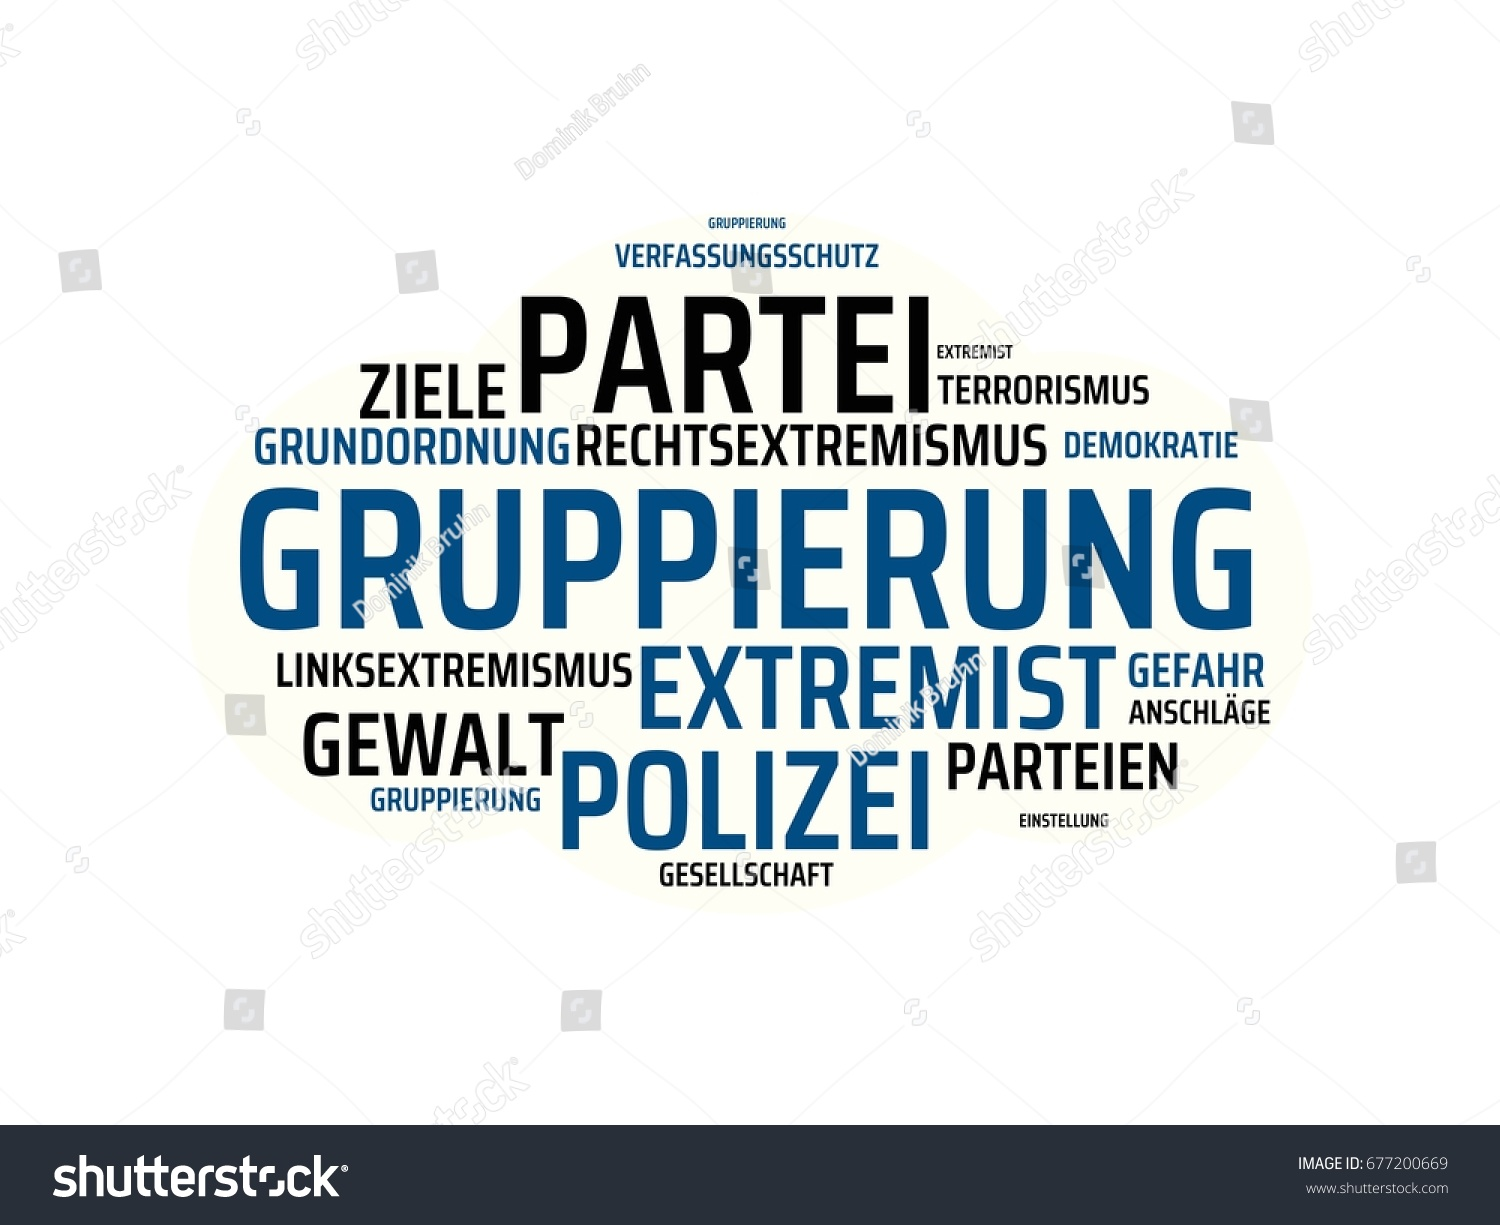 Images words german language extremismextremistrightwingpolitical images with words in german language extremismextremistright wingpolitical kristyandbryce Images